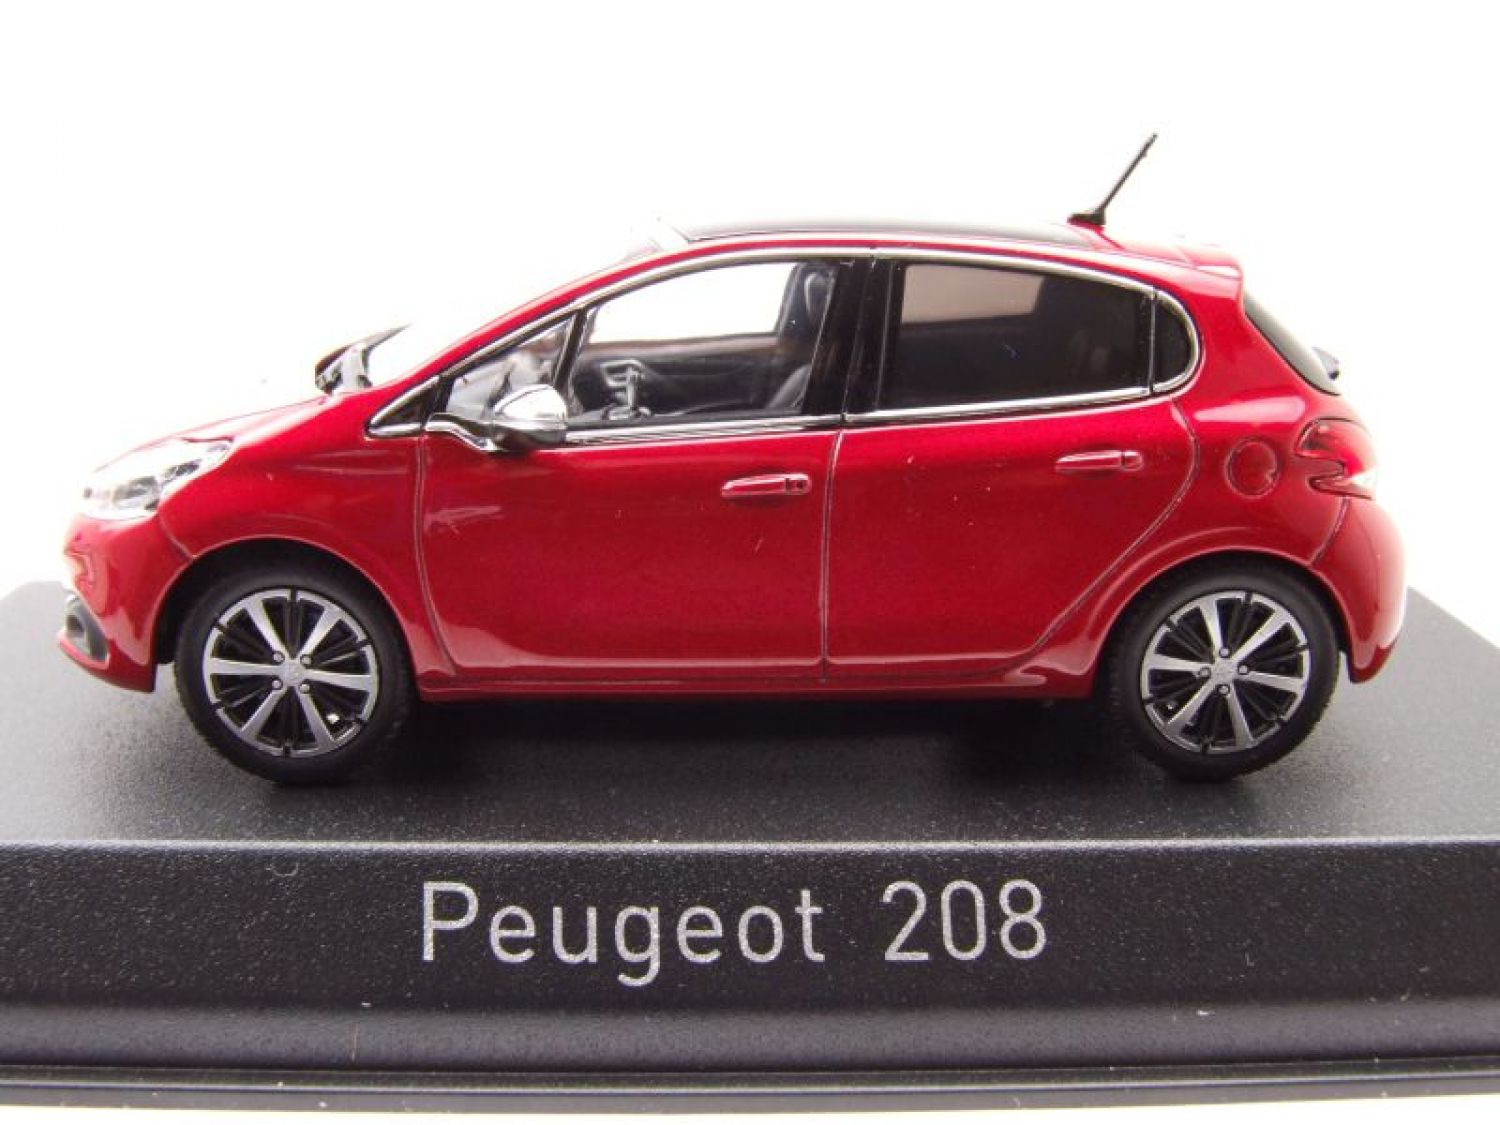 peugeot 208 2015 rouge m tallique mod le de voiture 1 43. Black Bedroom Furniture Sets. Home Design Ideas